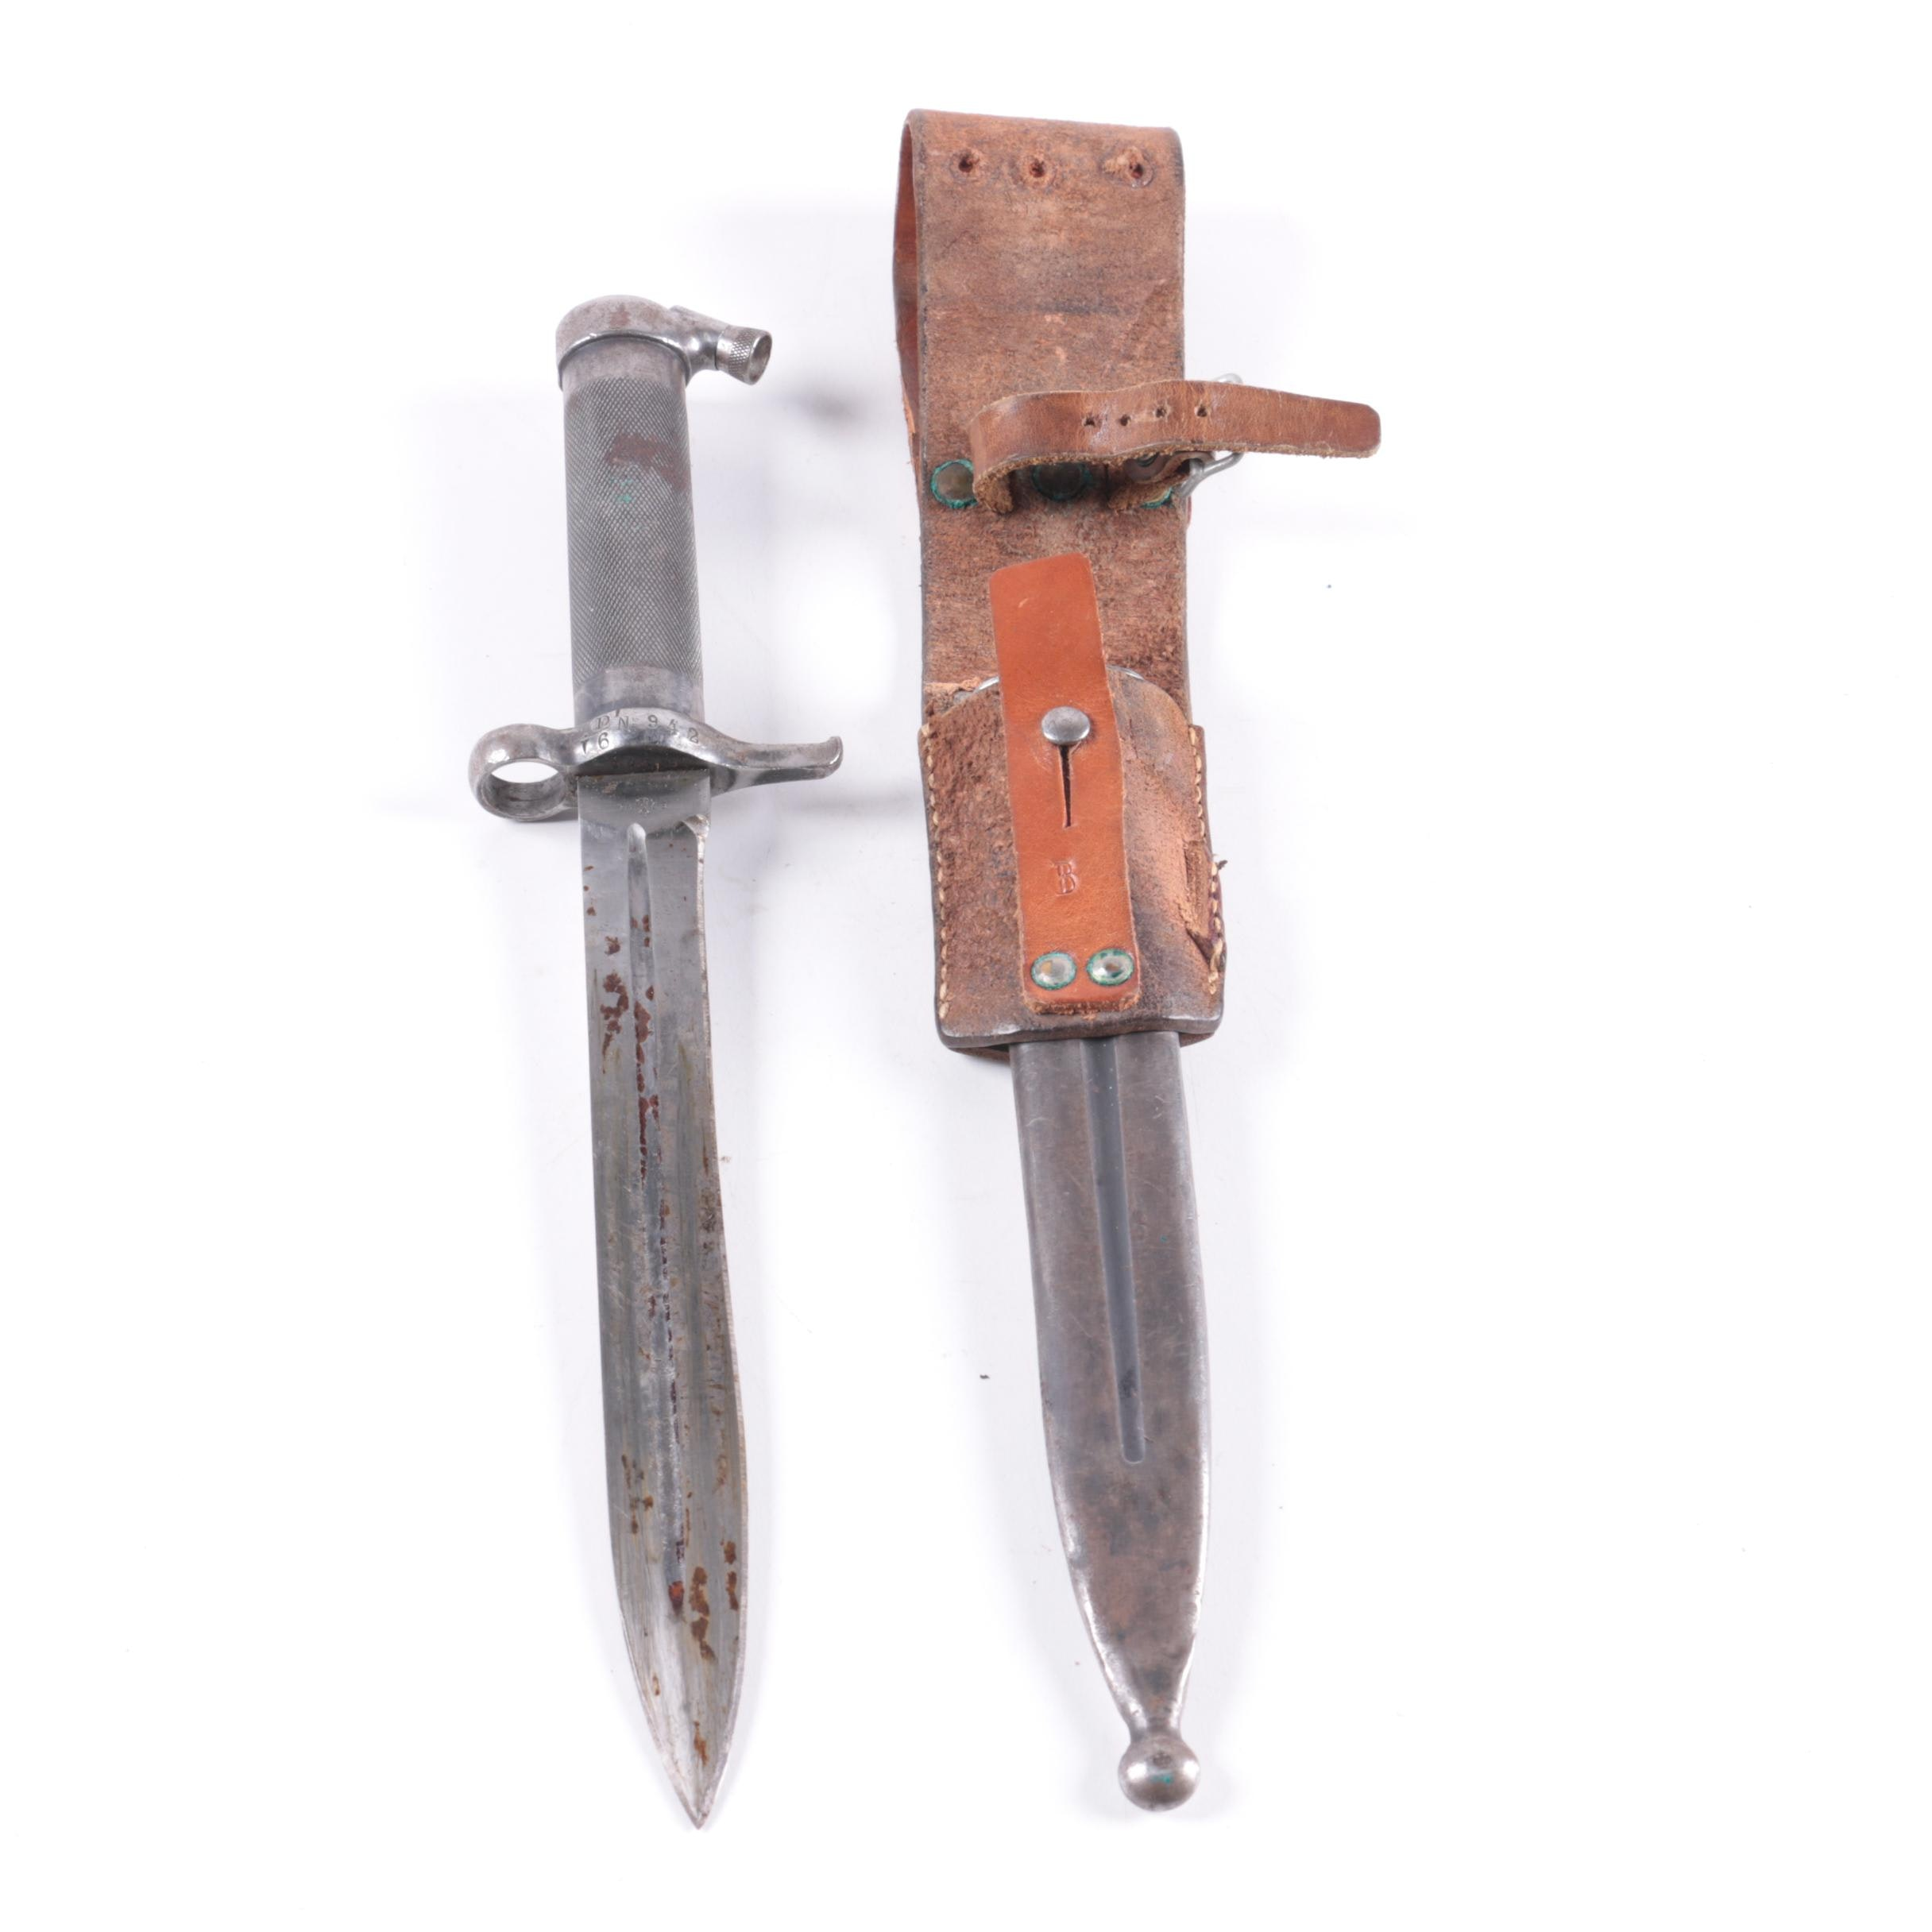 Antique Swedish M96 Bayonet in Scabbard with Leather Frog